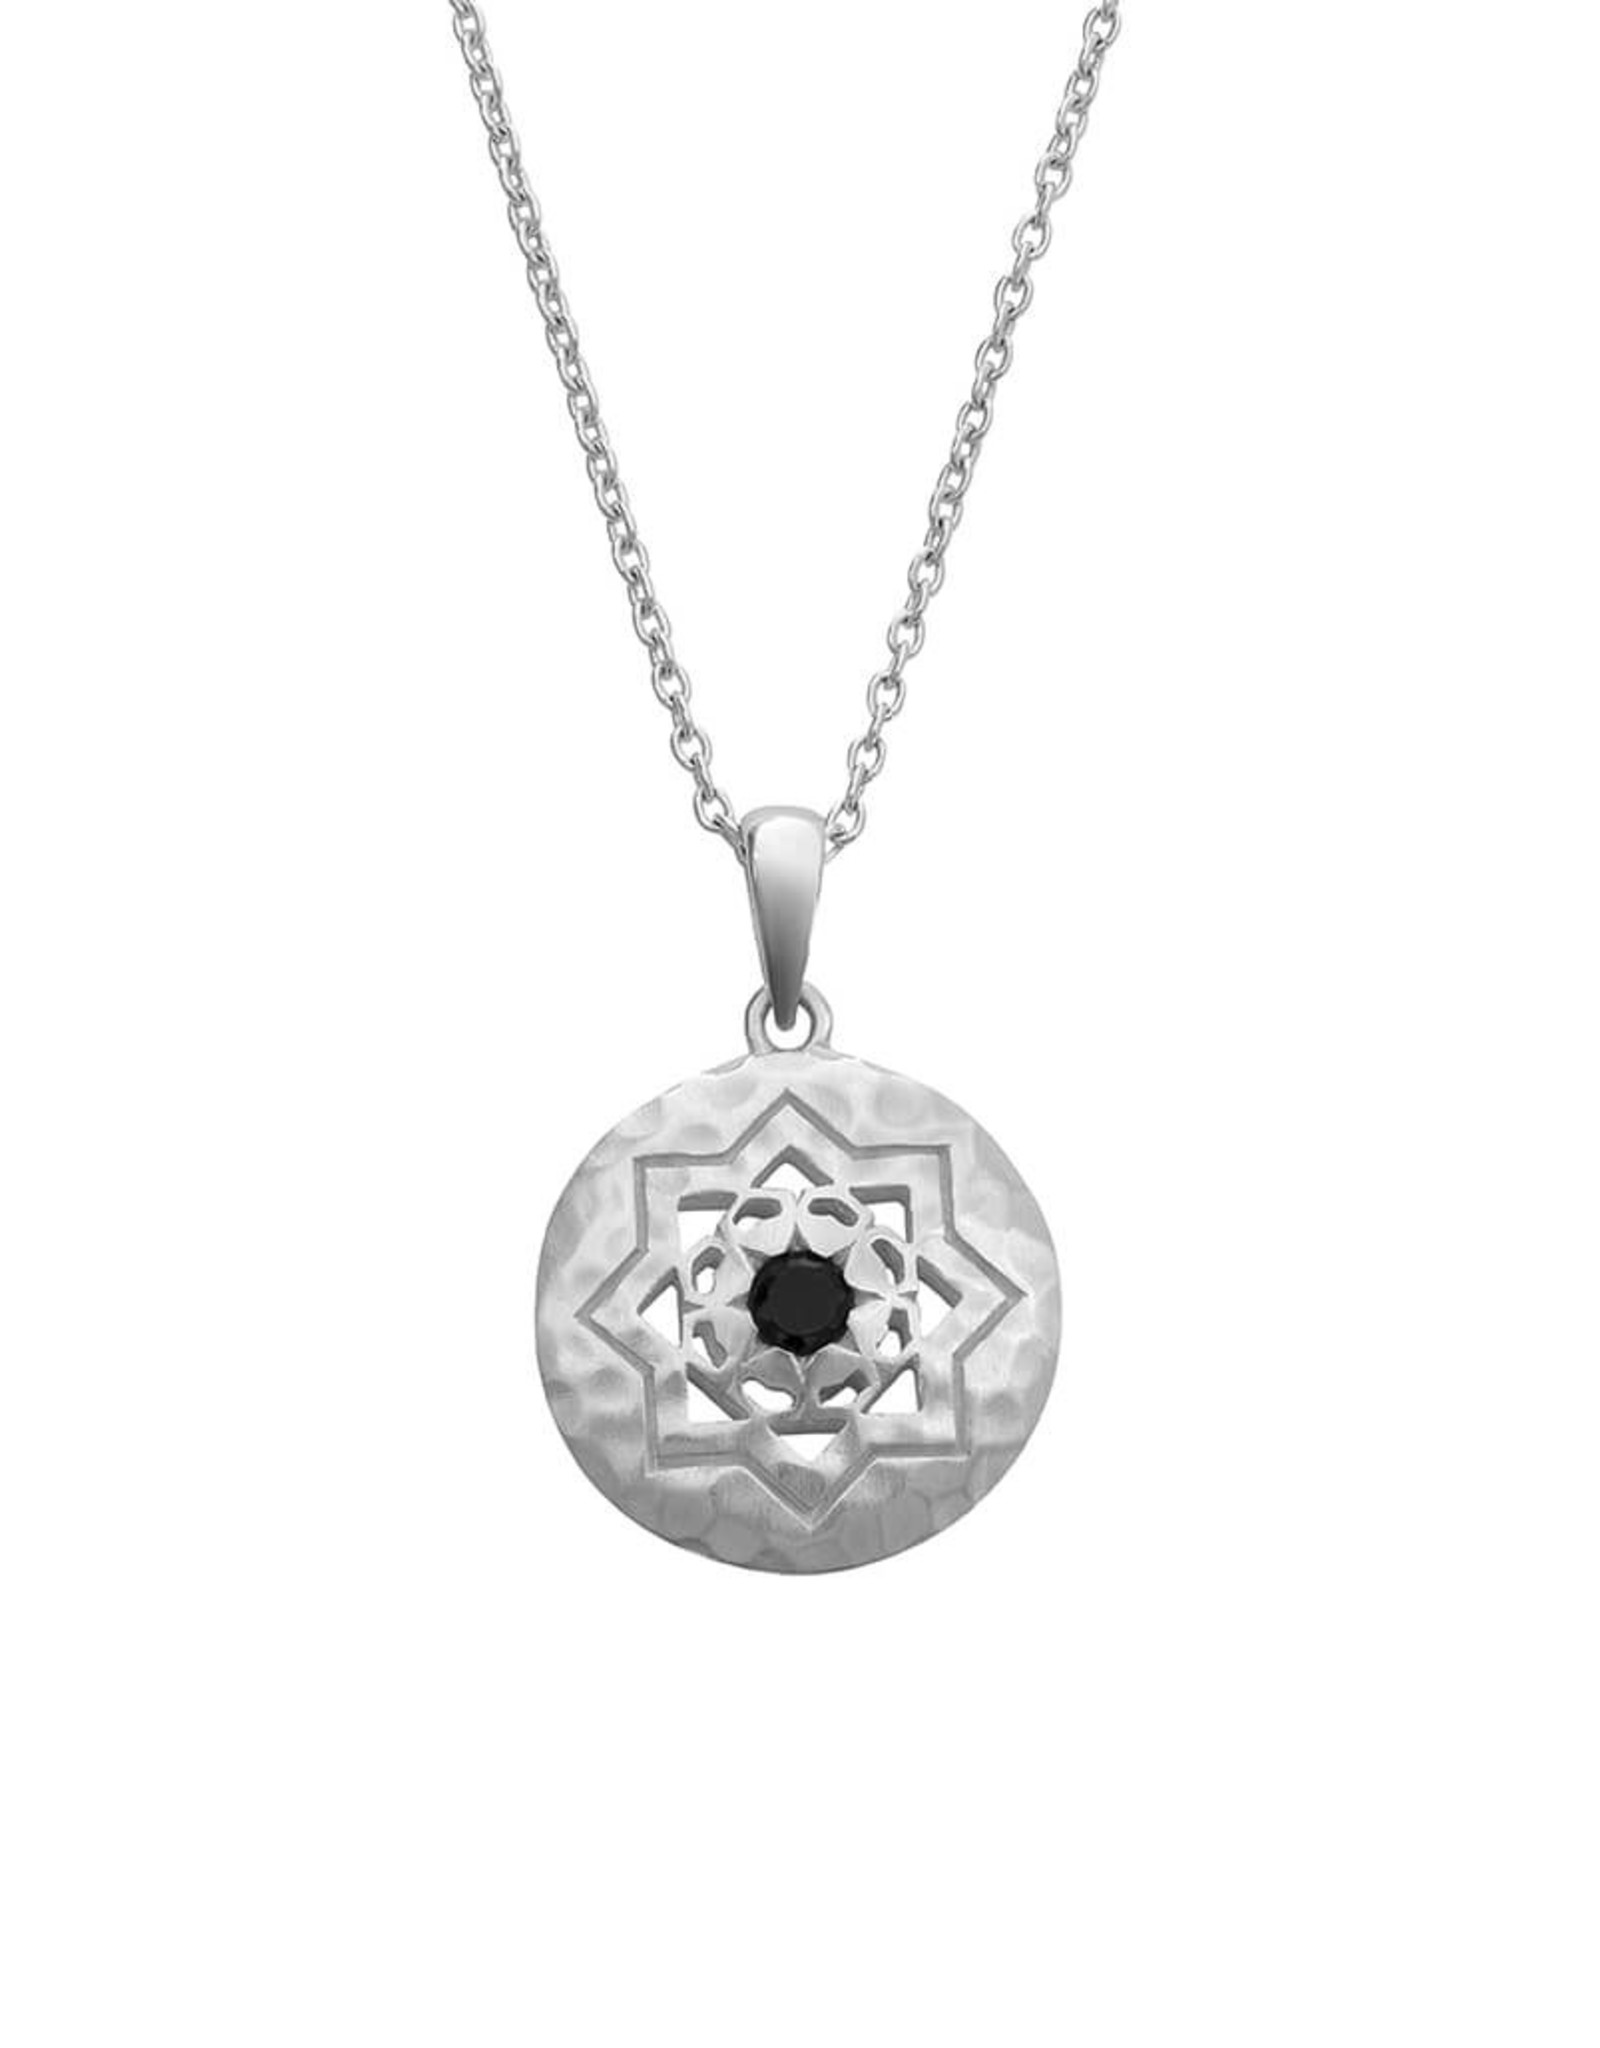 MURKANI ANDALUSIA NECKLACE WITH BLACK SPINEL STONE STERLING SILVER